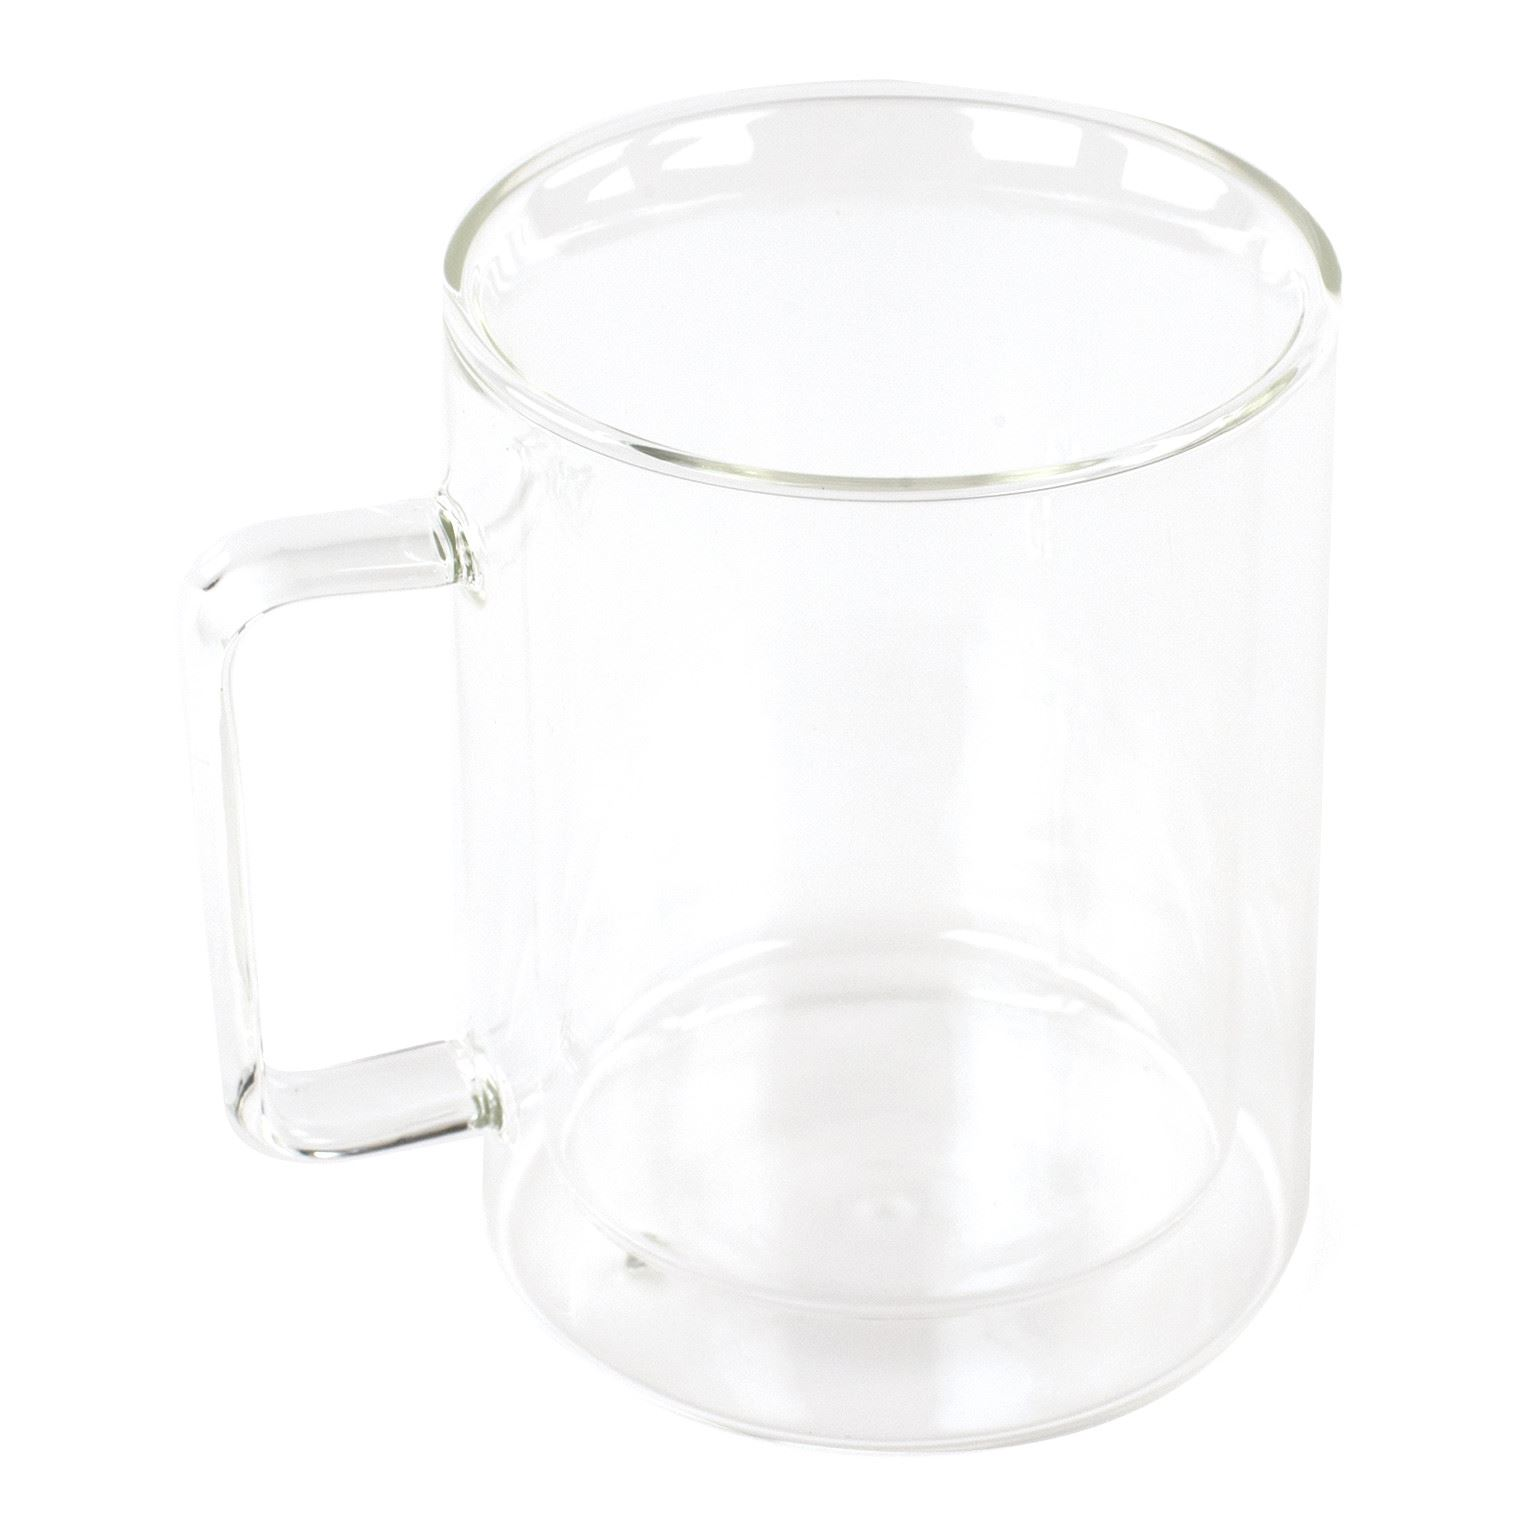 lexington stay cold insulated beer mug double wall pint glass or tumbler ebay. Black Bedroom Furniture Sets. Home Design Ideas